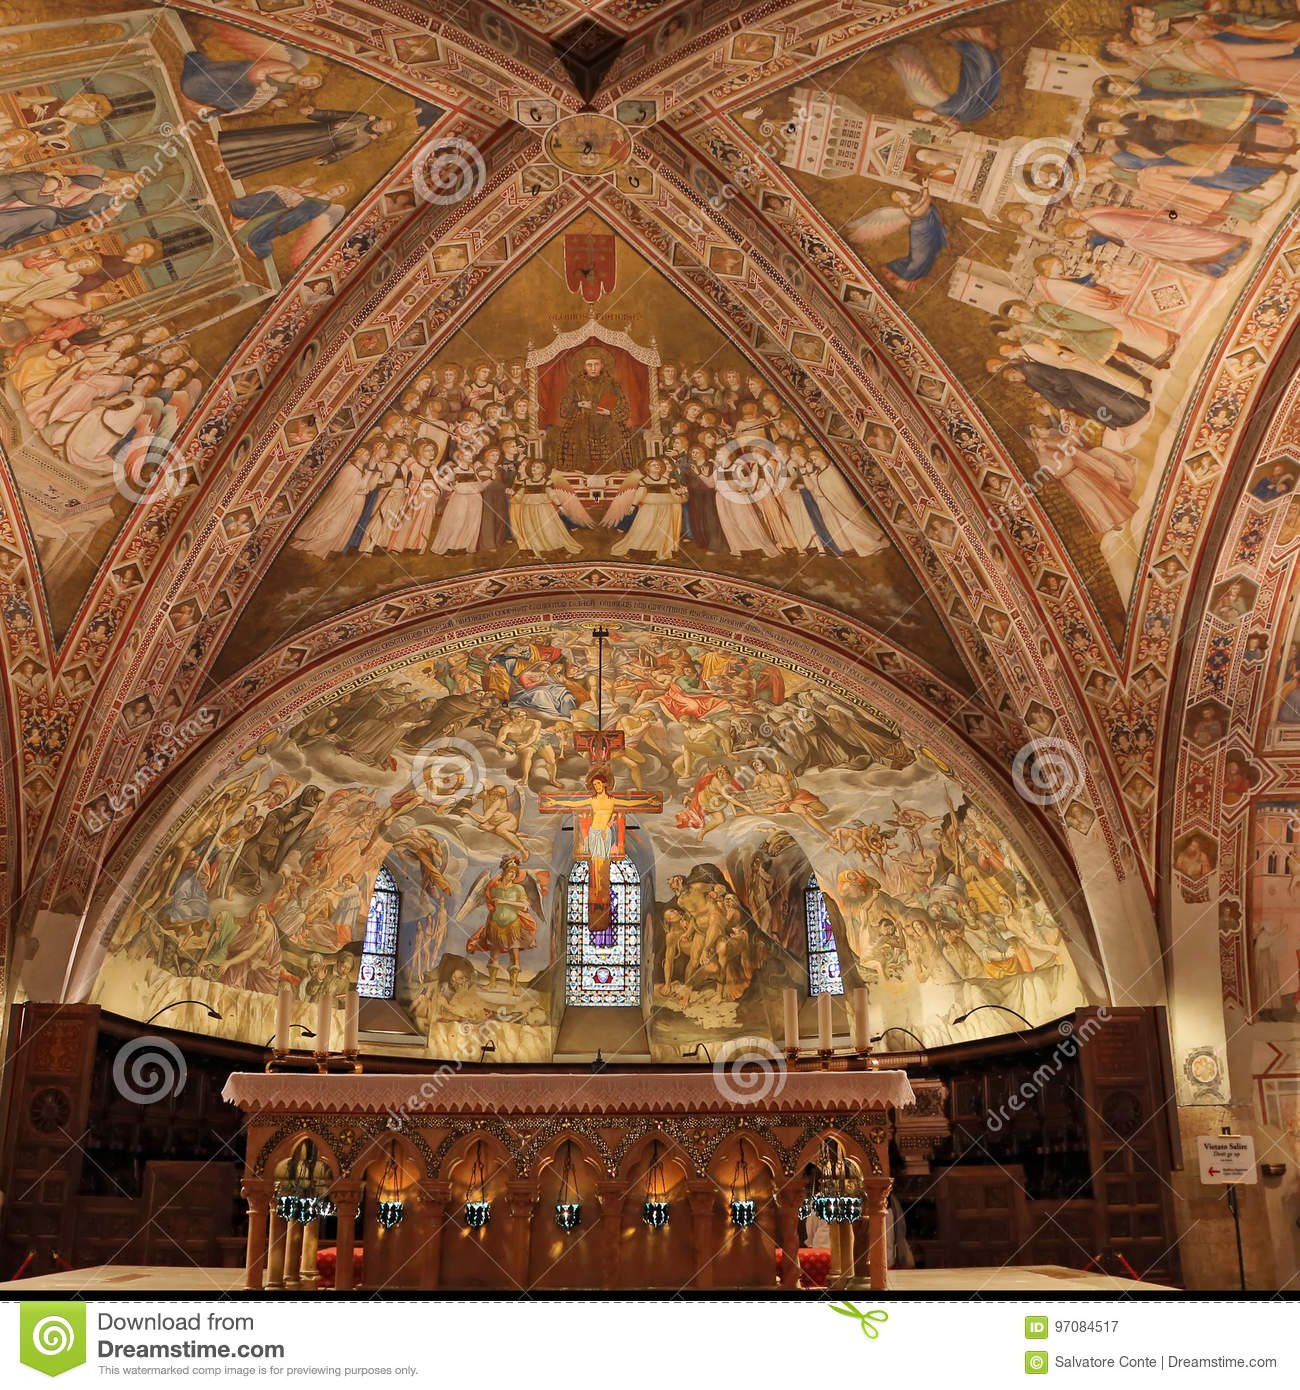 Interior Famous Basilica of St. Francis of Assisi Basilica Papale di San Francesco with Lower Plaza at sunset in Assisi, Umbria,